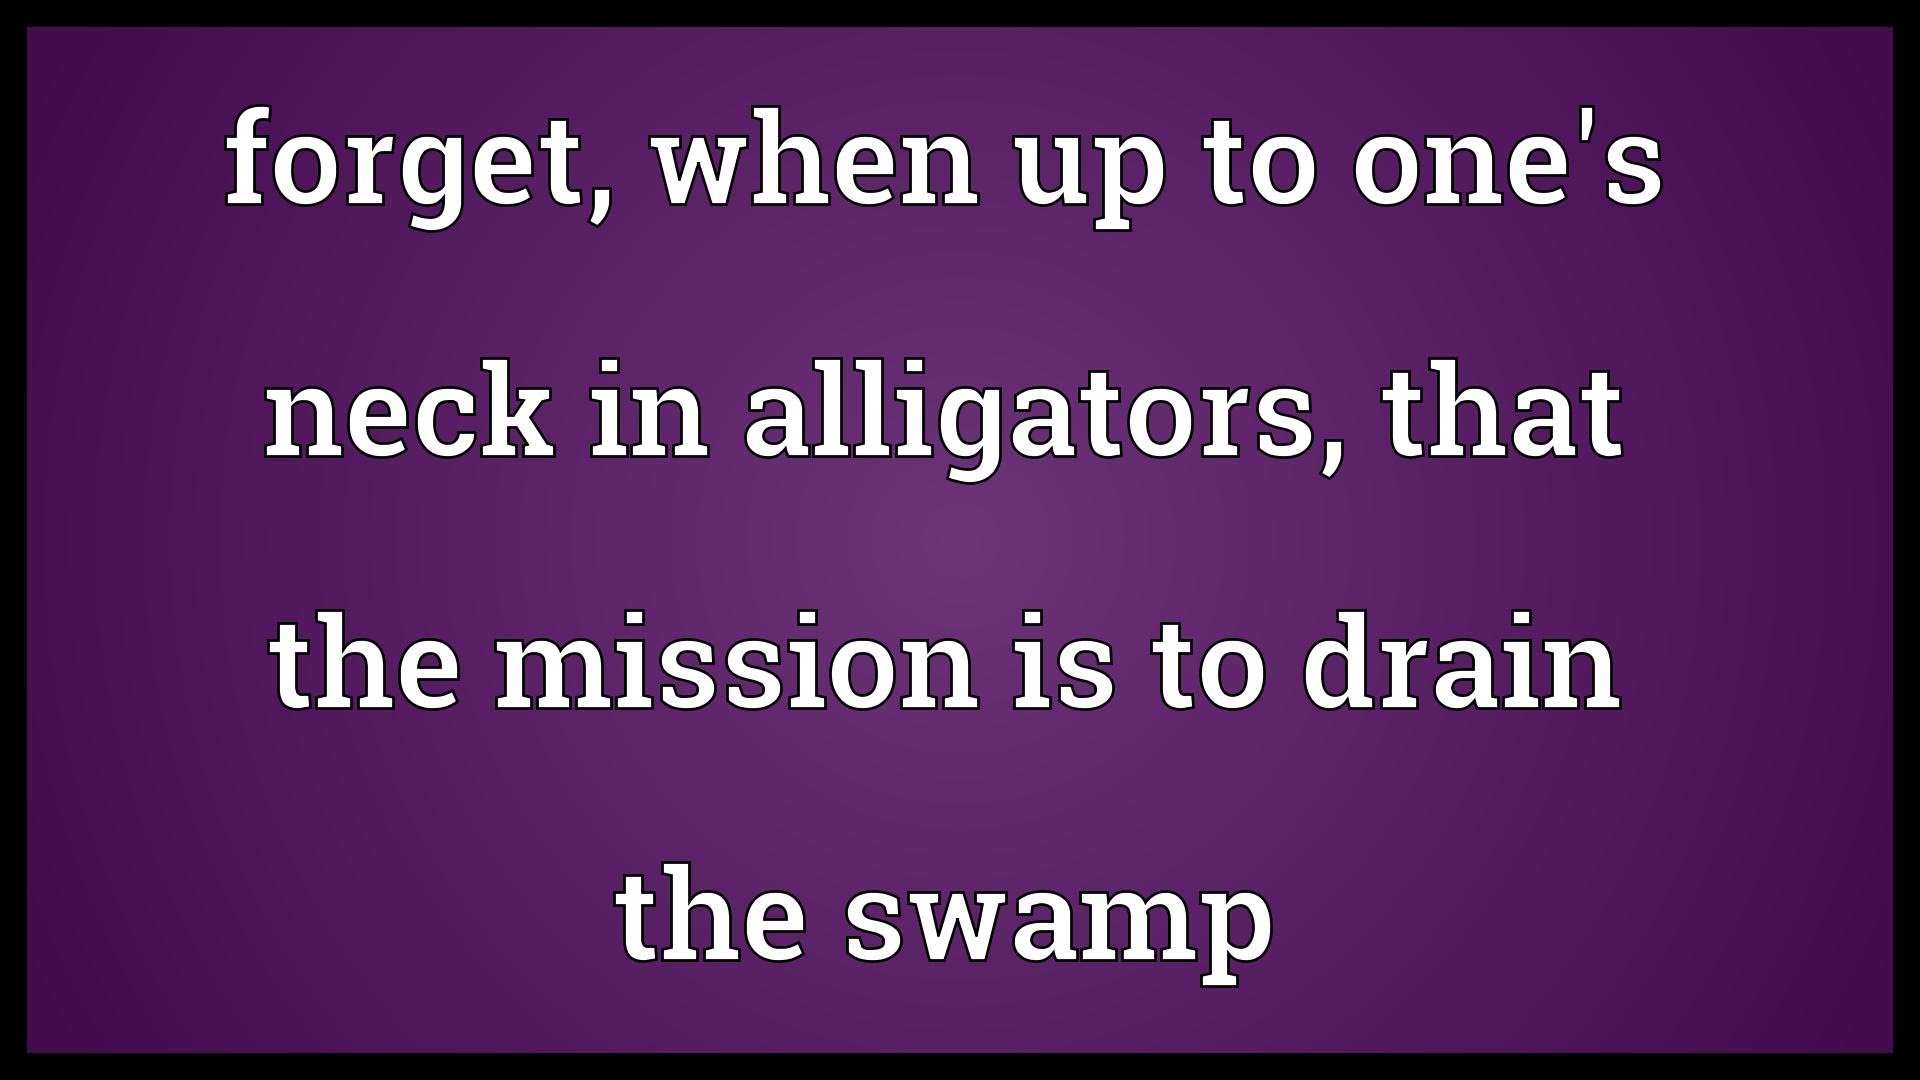 Forget, when up to one's neck in alligators, that the mission is.